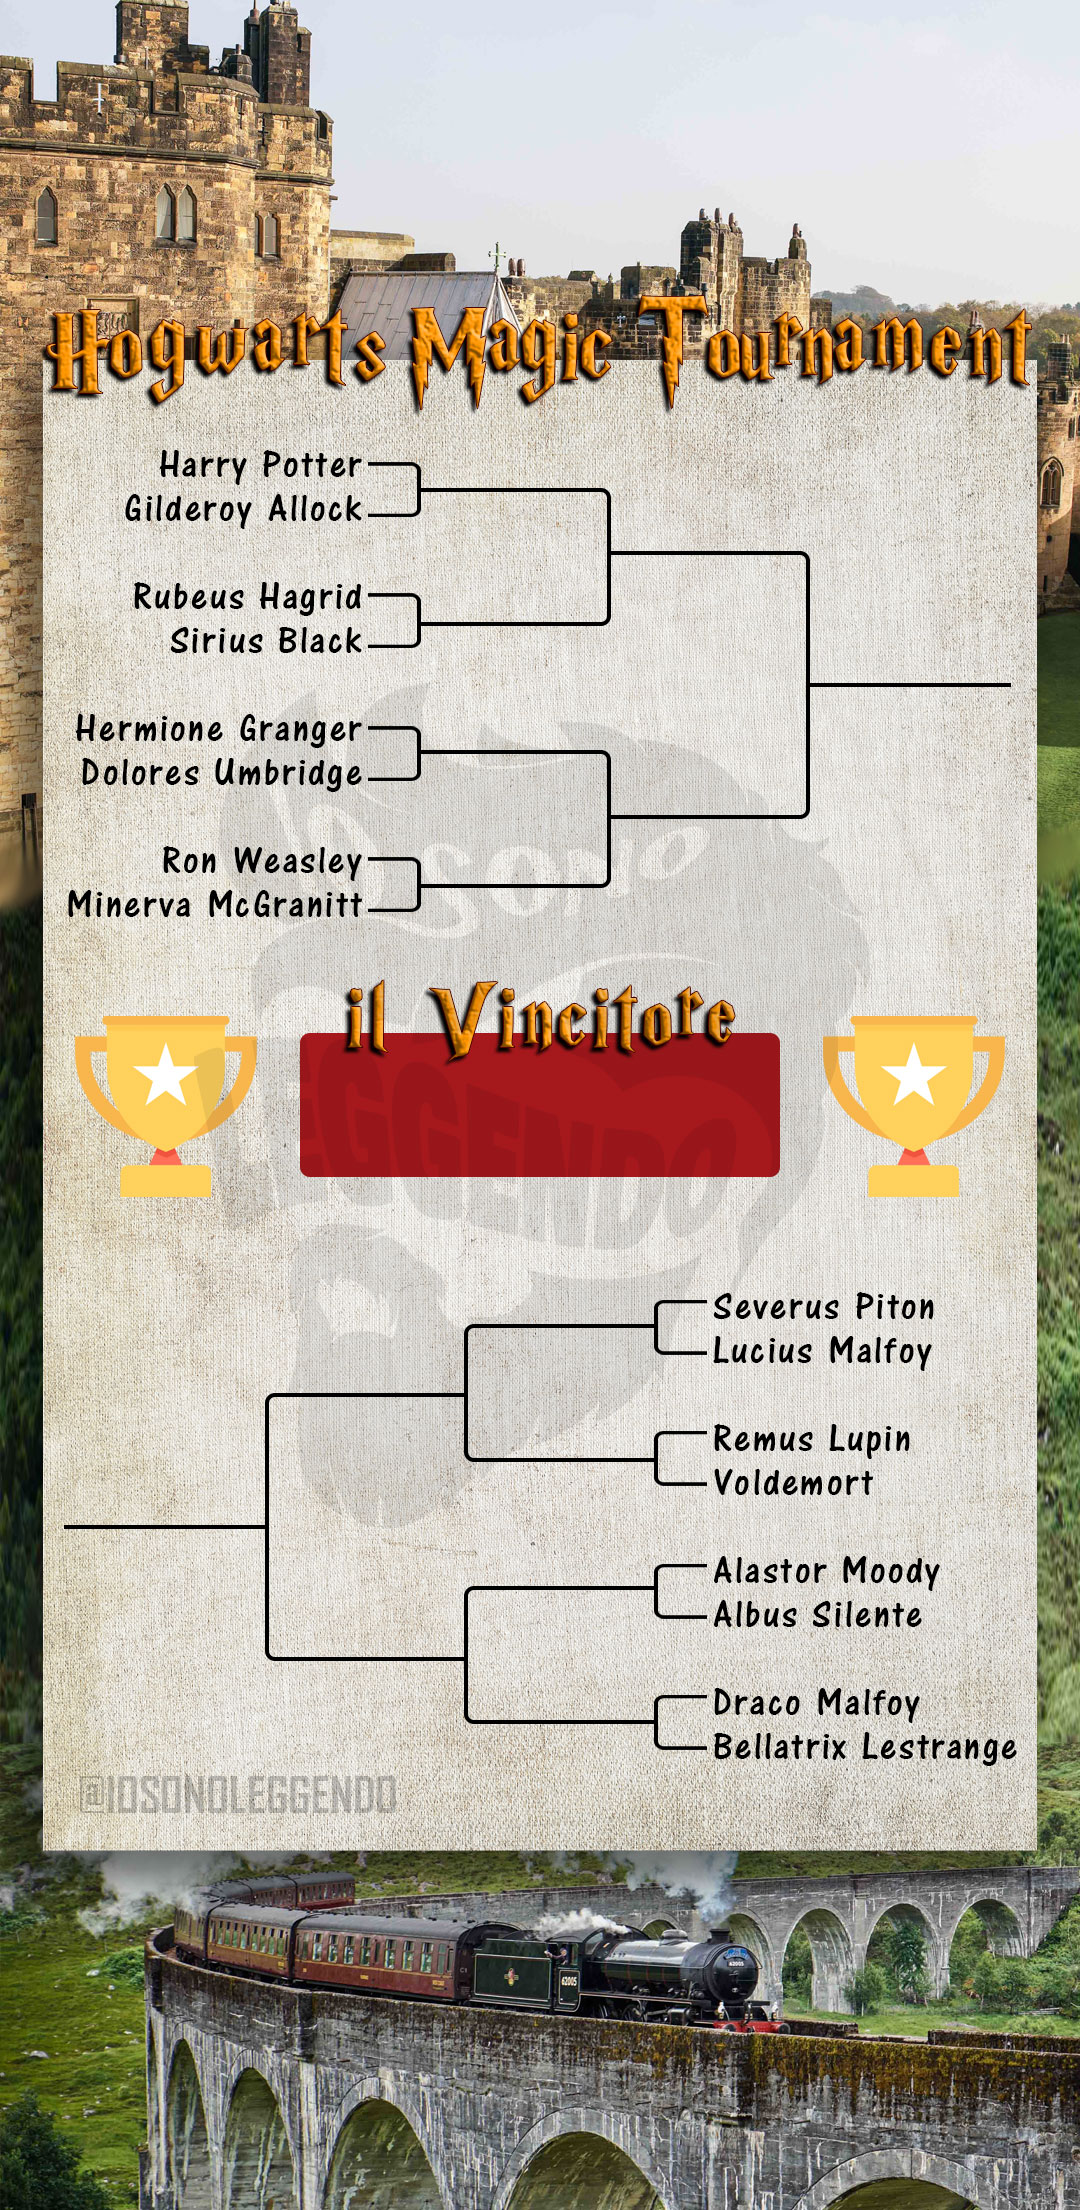 Hogwarts Magic Tournament